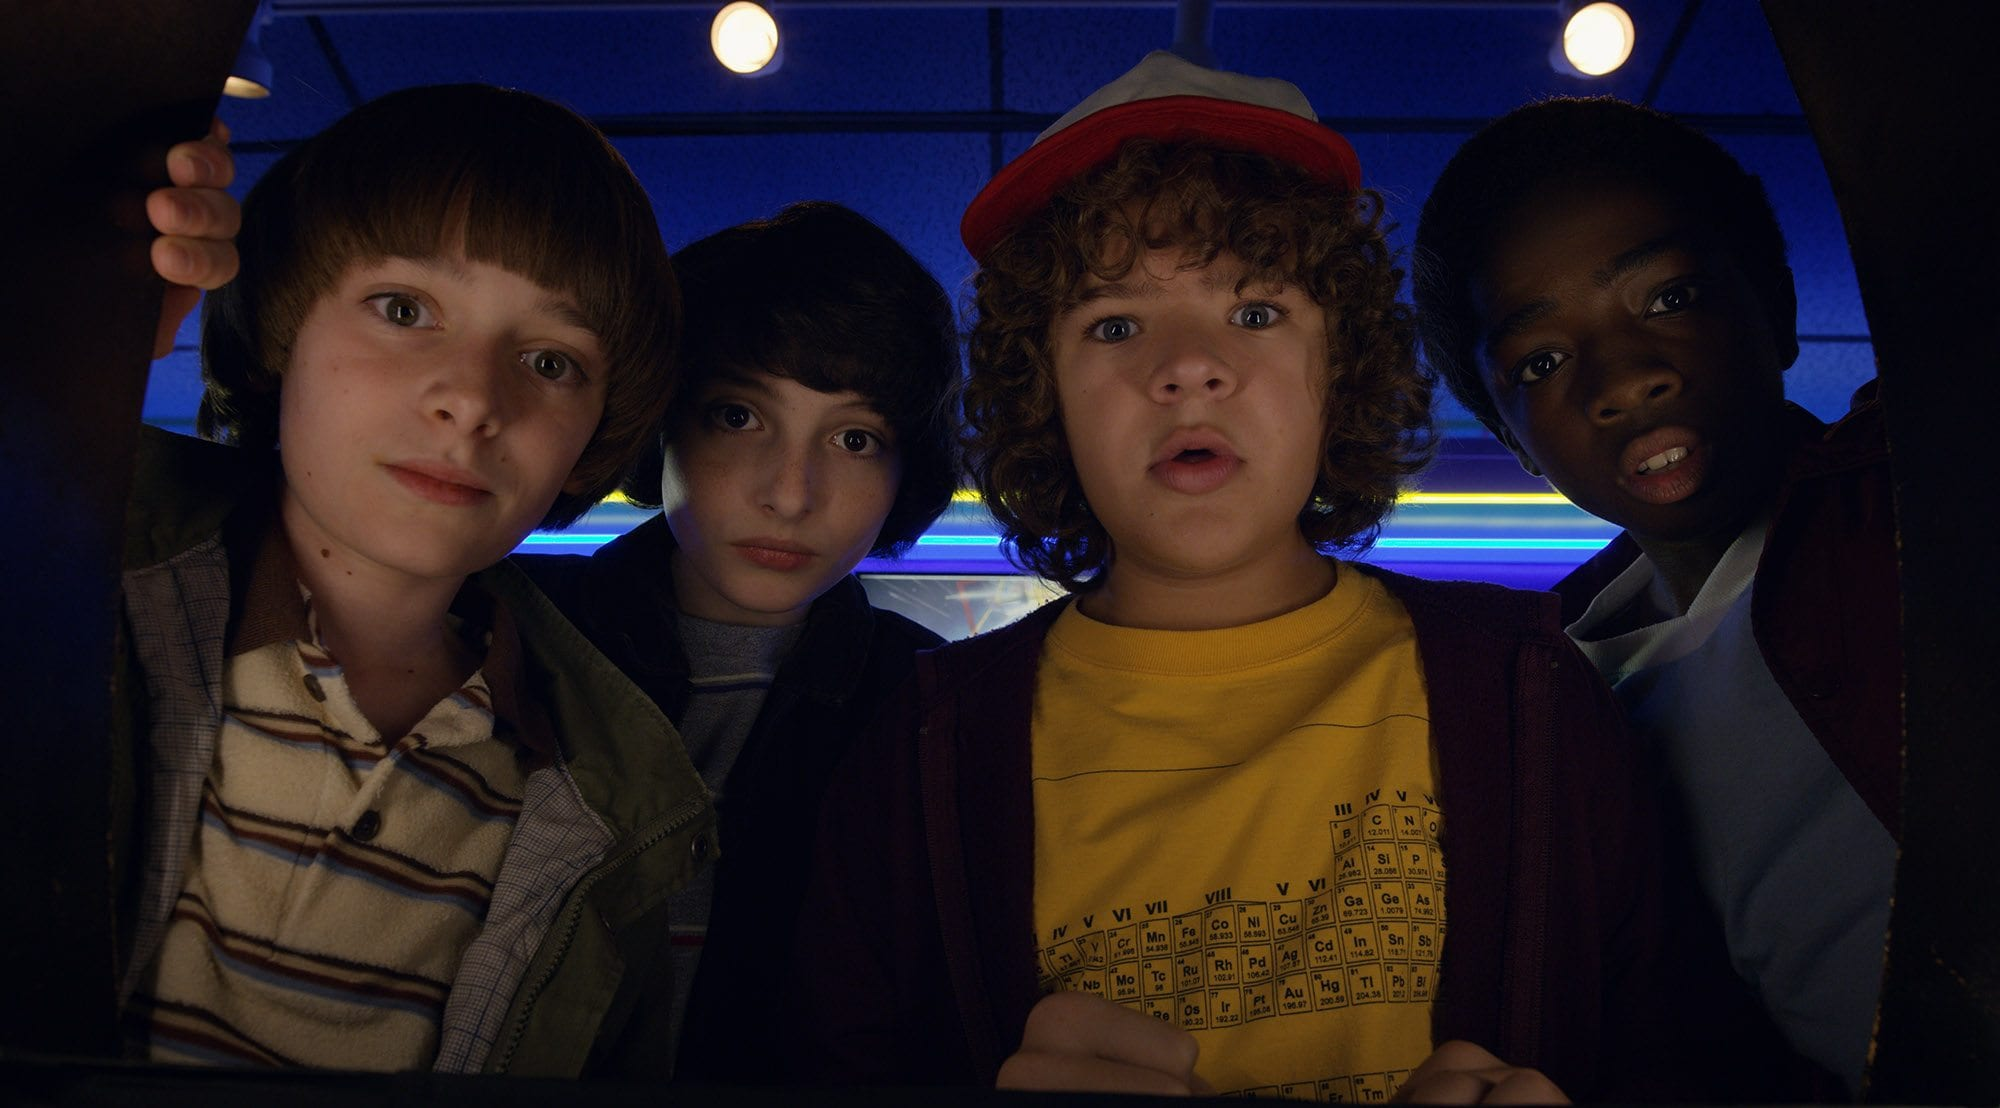 Created by the Duffer brothers, 'Stranger Things' is a love letter to the '80s classics that captivated a generation.